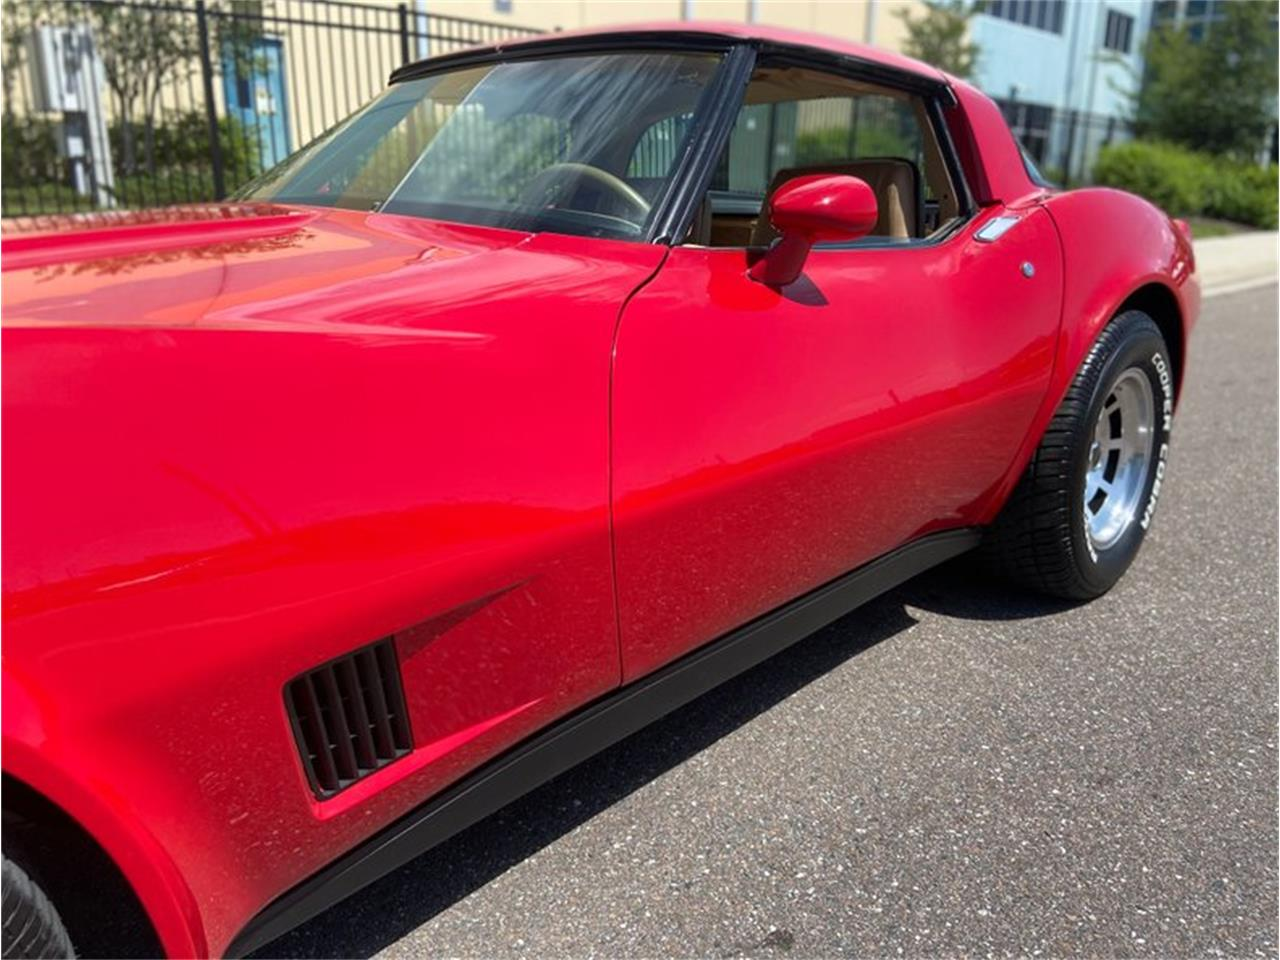 1981 Chevrolet Corvette (CC-1378002) for sale in Clearwater, Florida